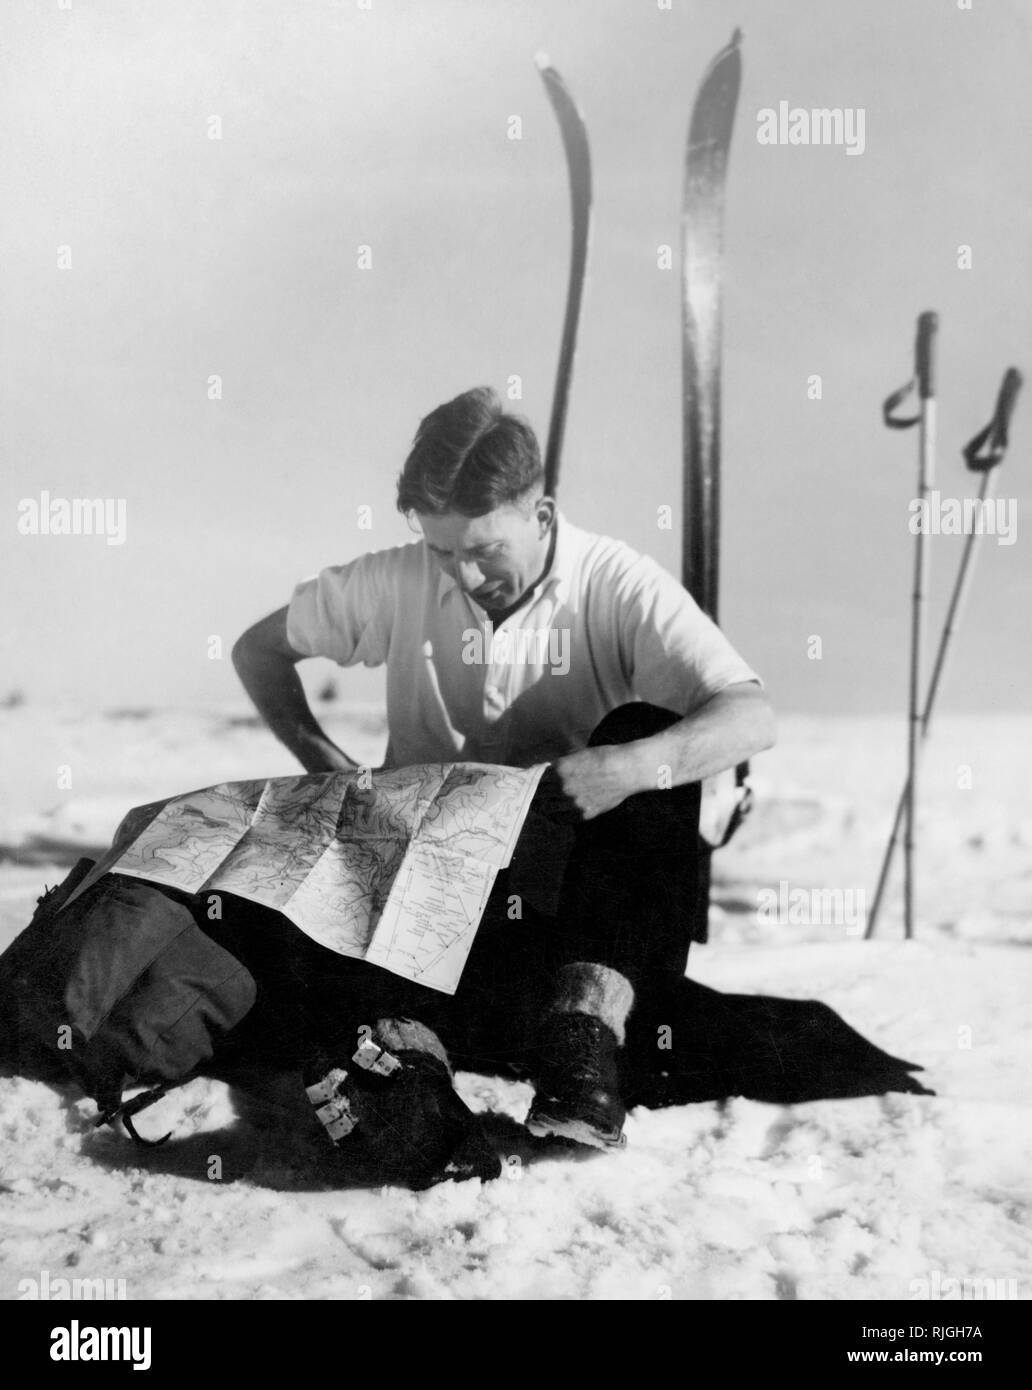 sport, skier reading a map, 1950 - Stock Image